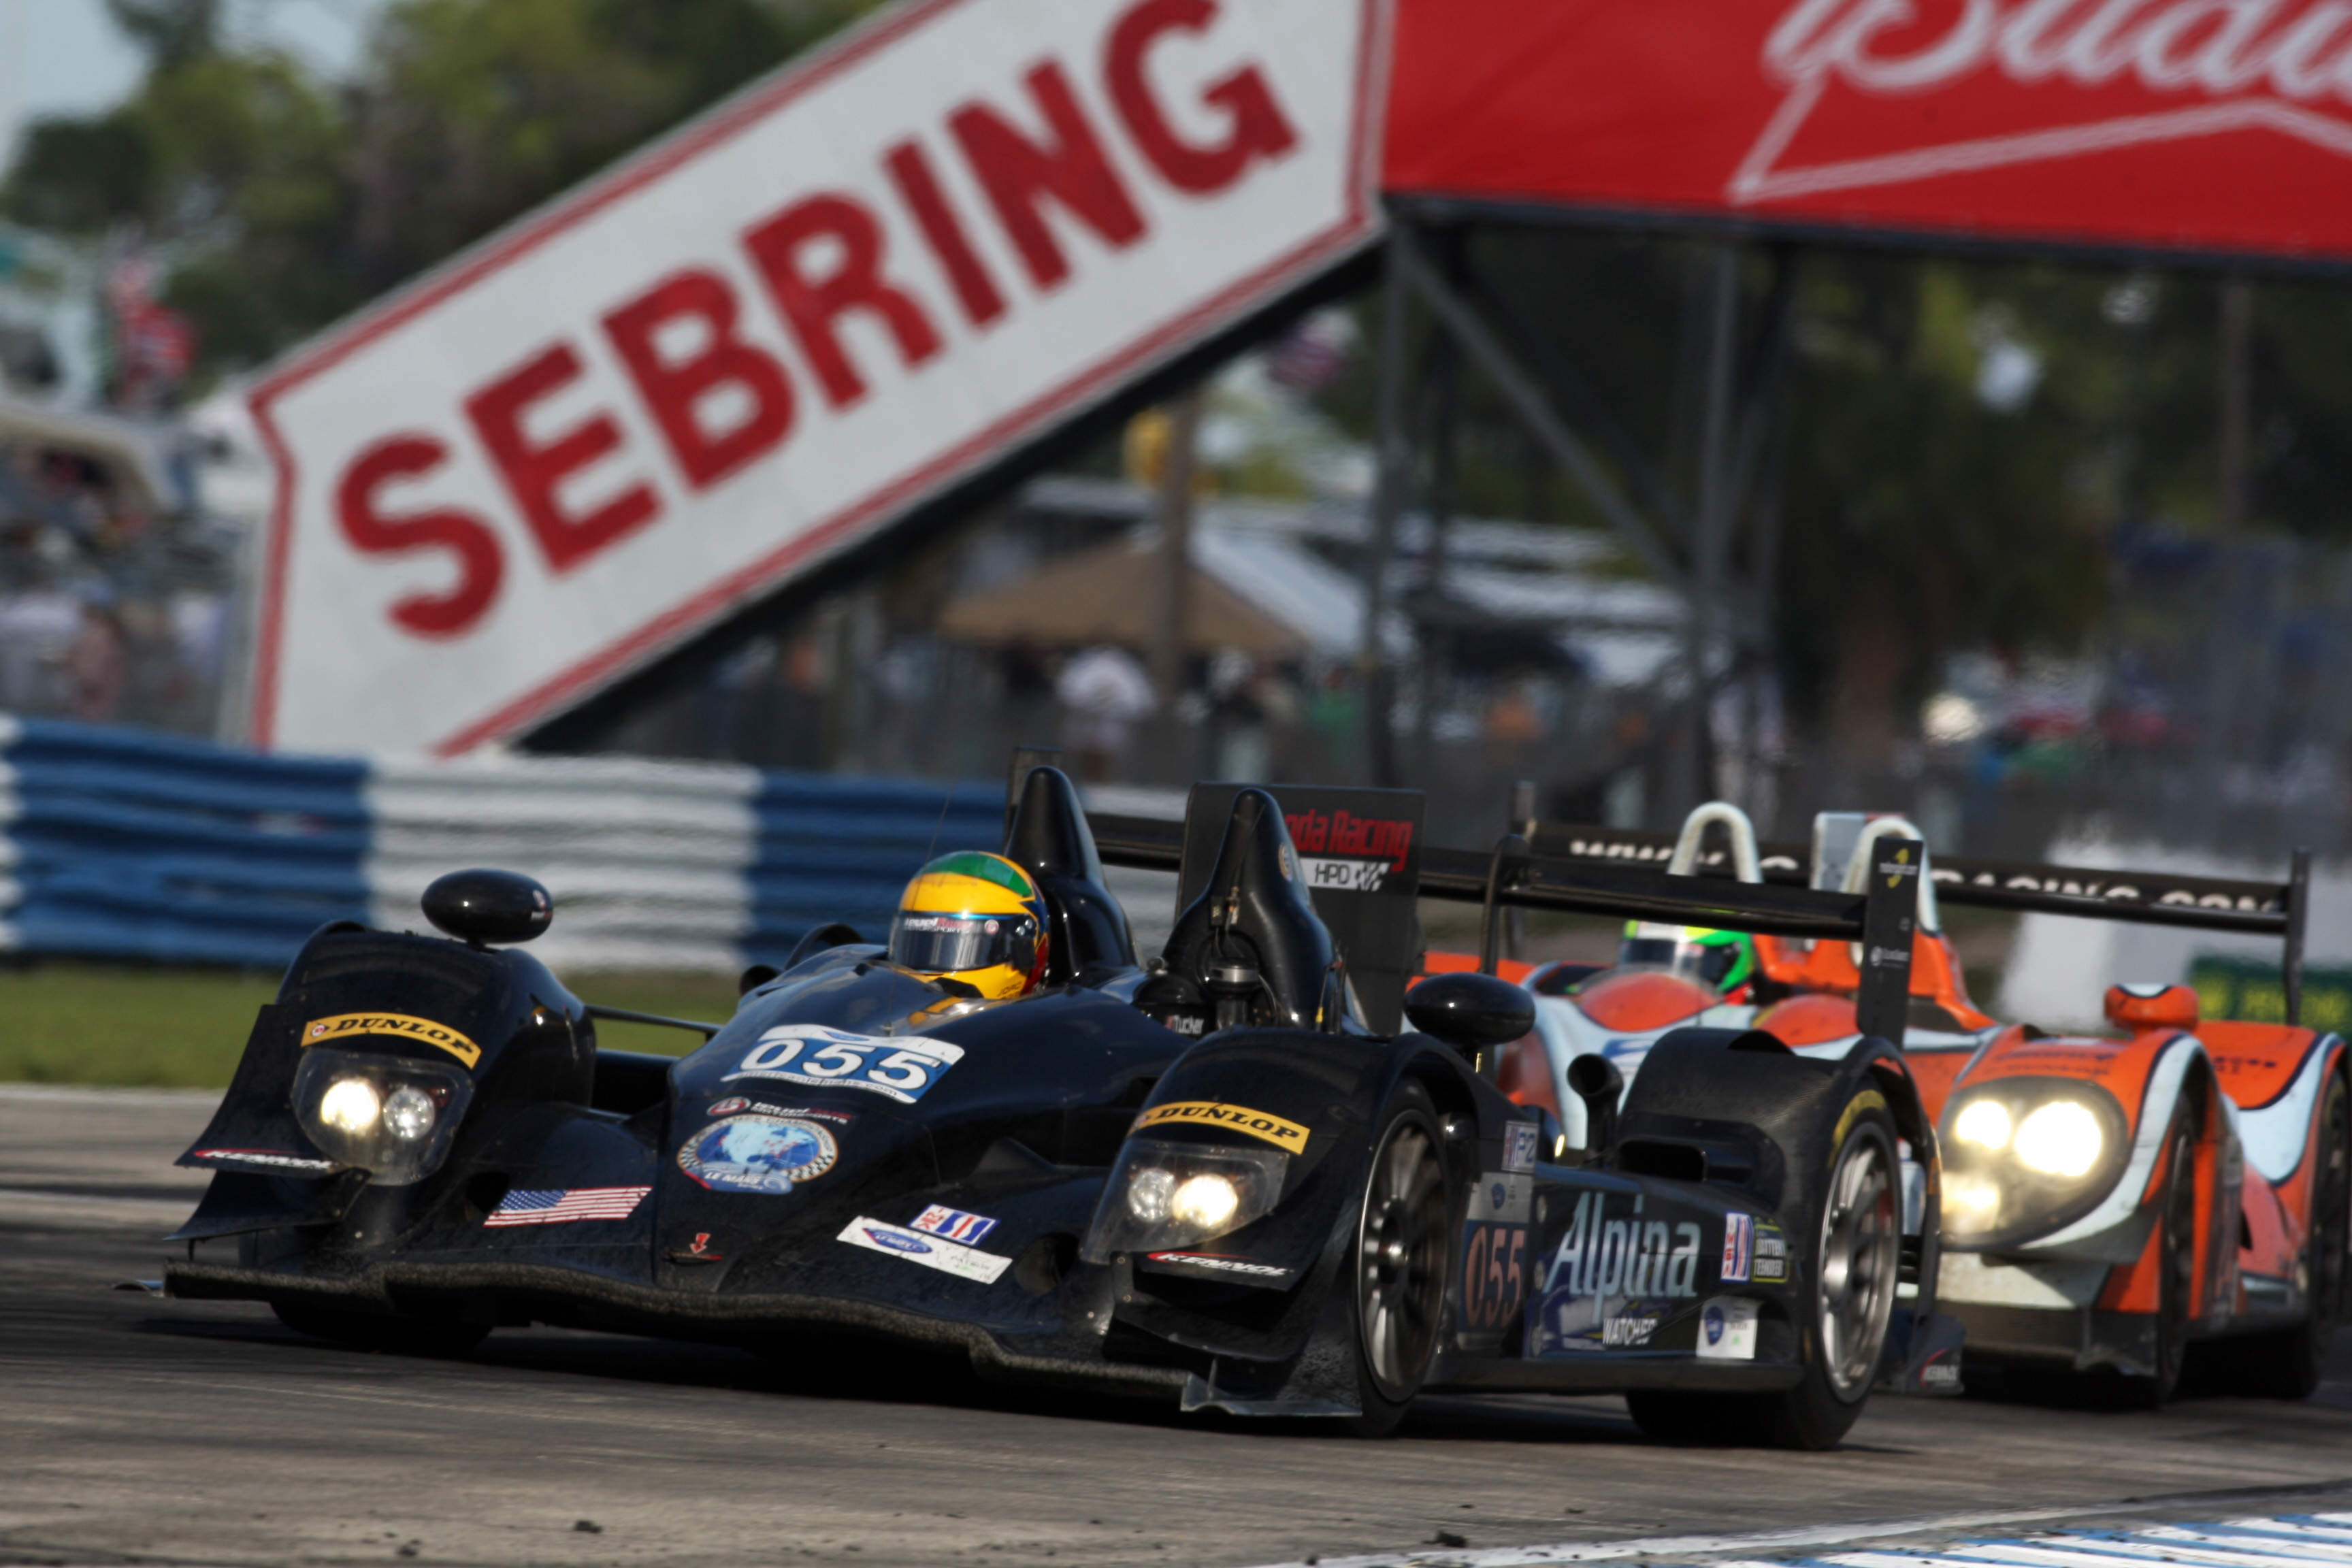 Level 5 Motorsports placed first in ALMS LMP2